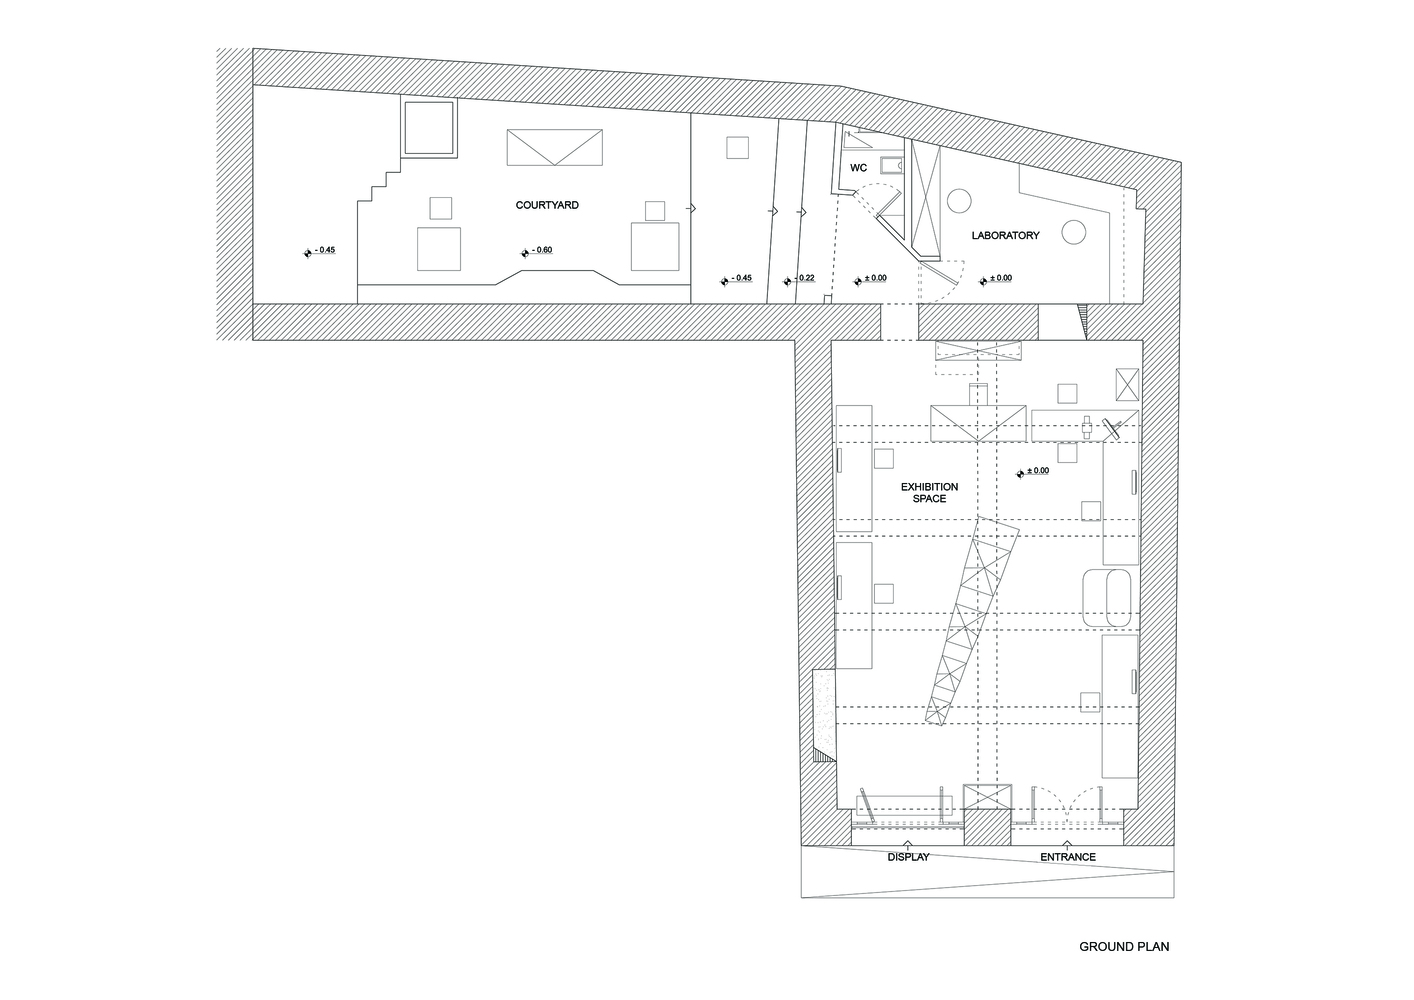 314_Architecture_Studio-glasses_store_ground_plan-hisheji